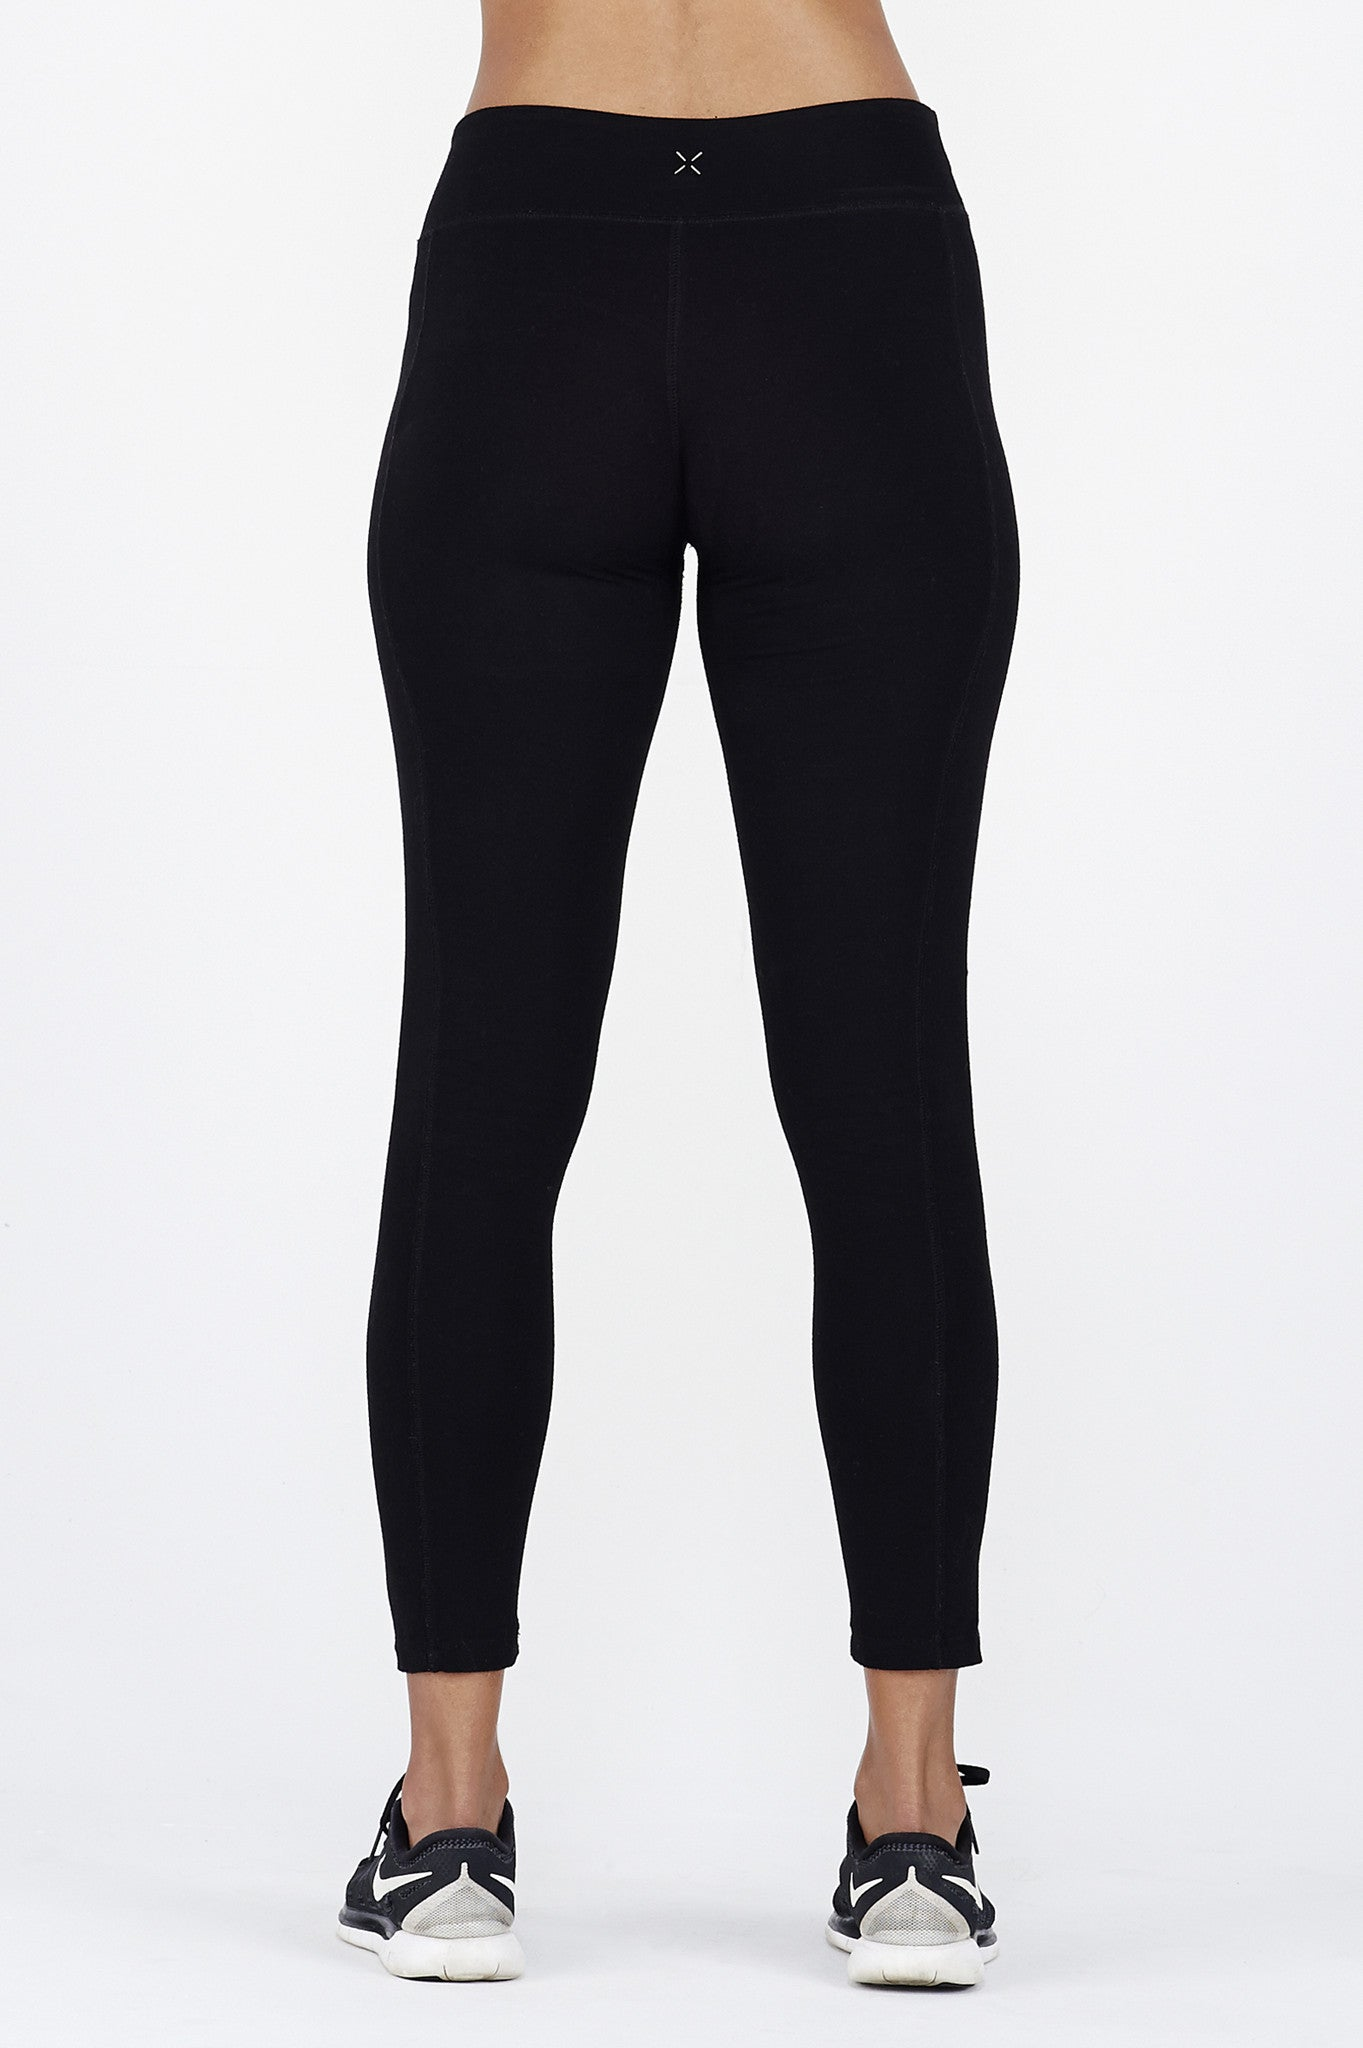 Woman's legs wearing black BAM.U bamboo low impact leggings